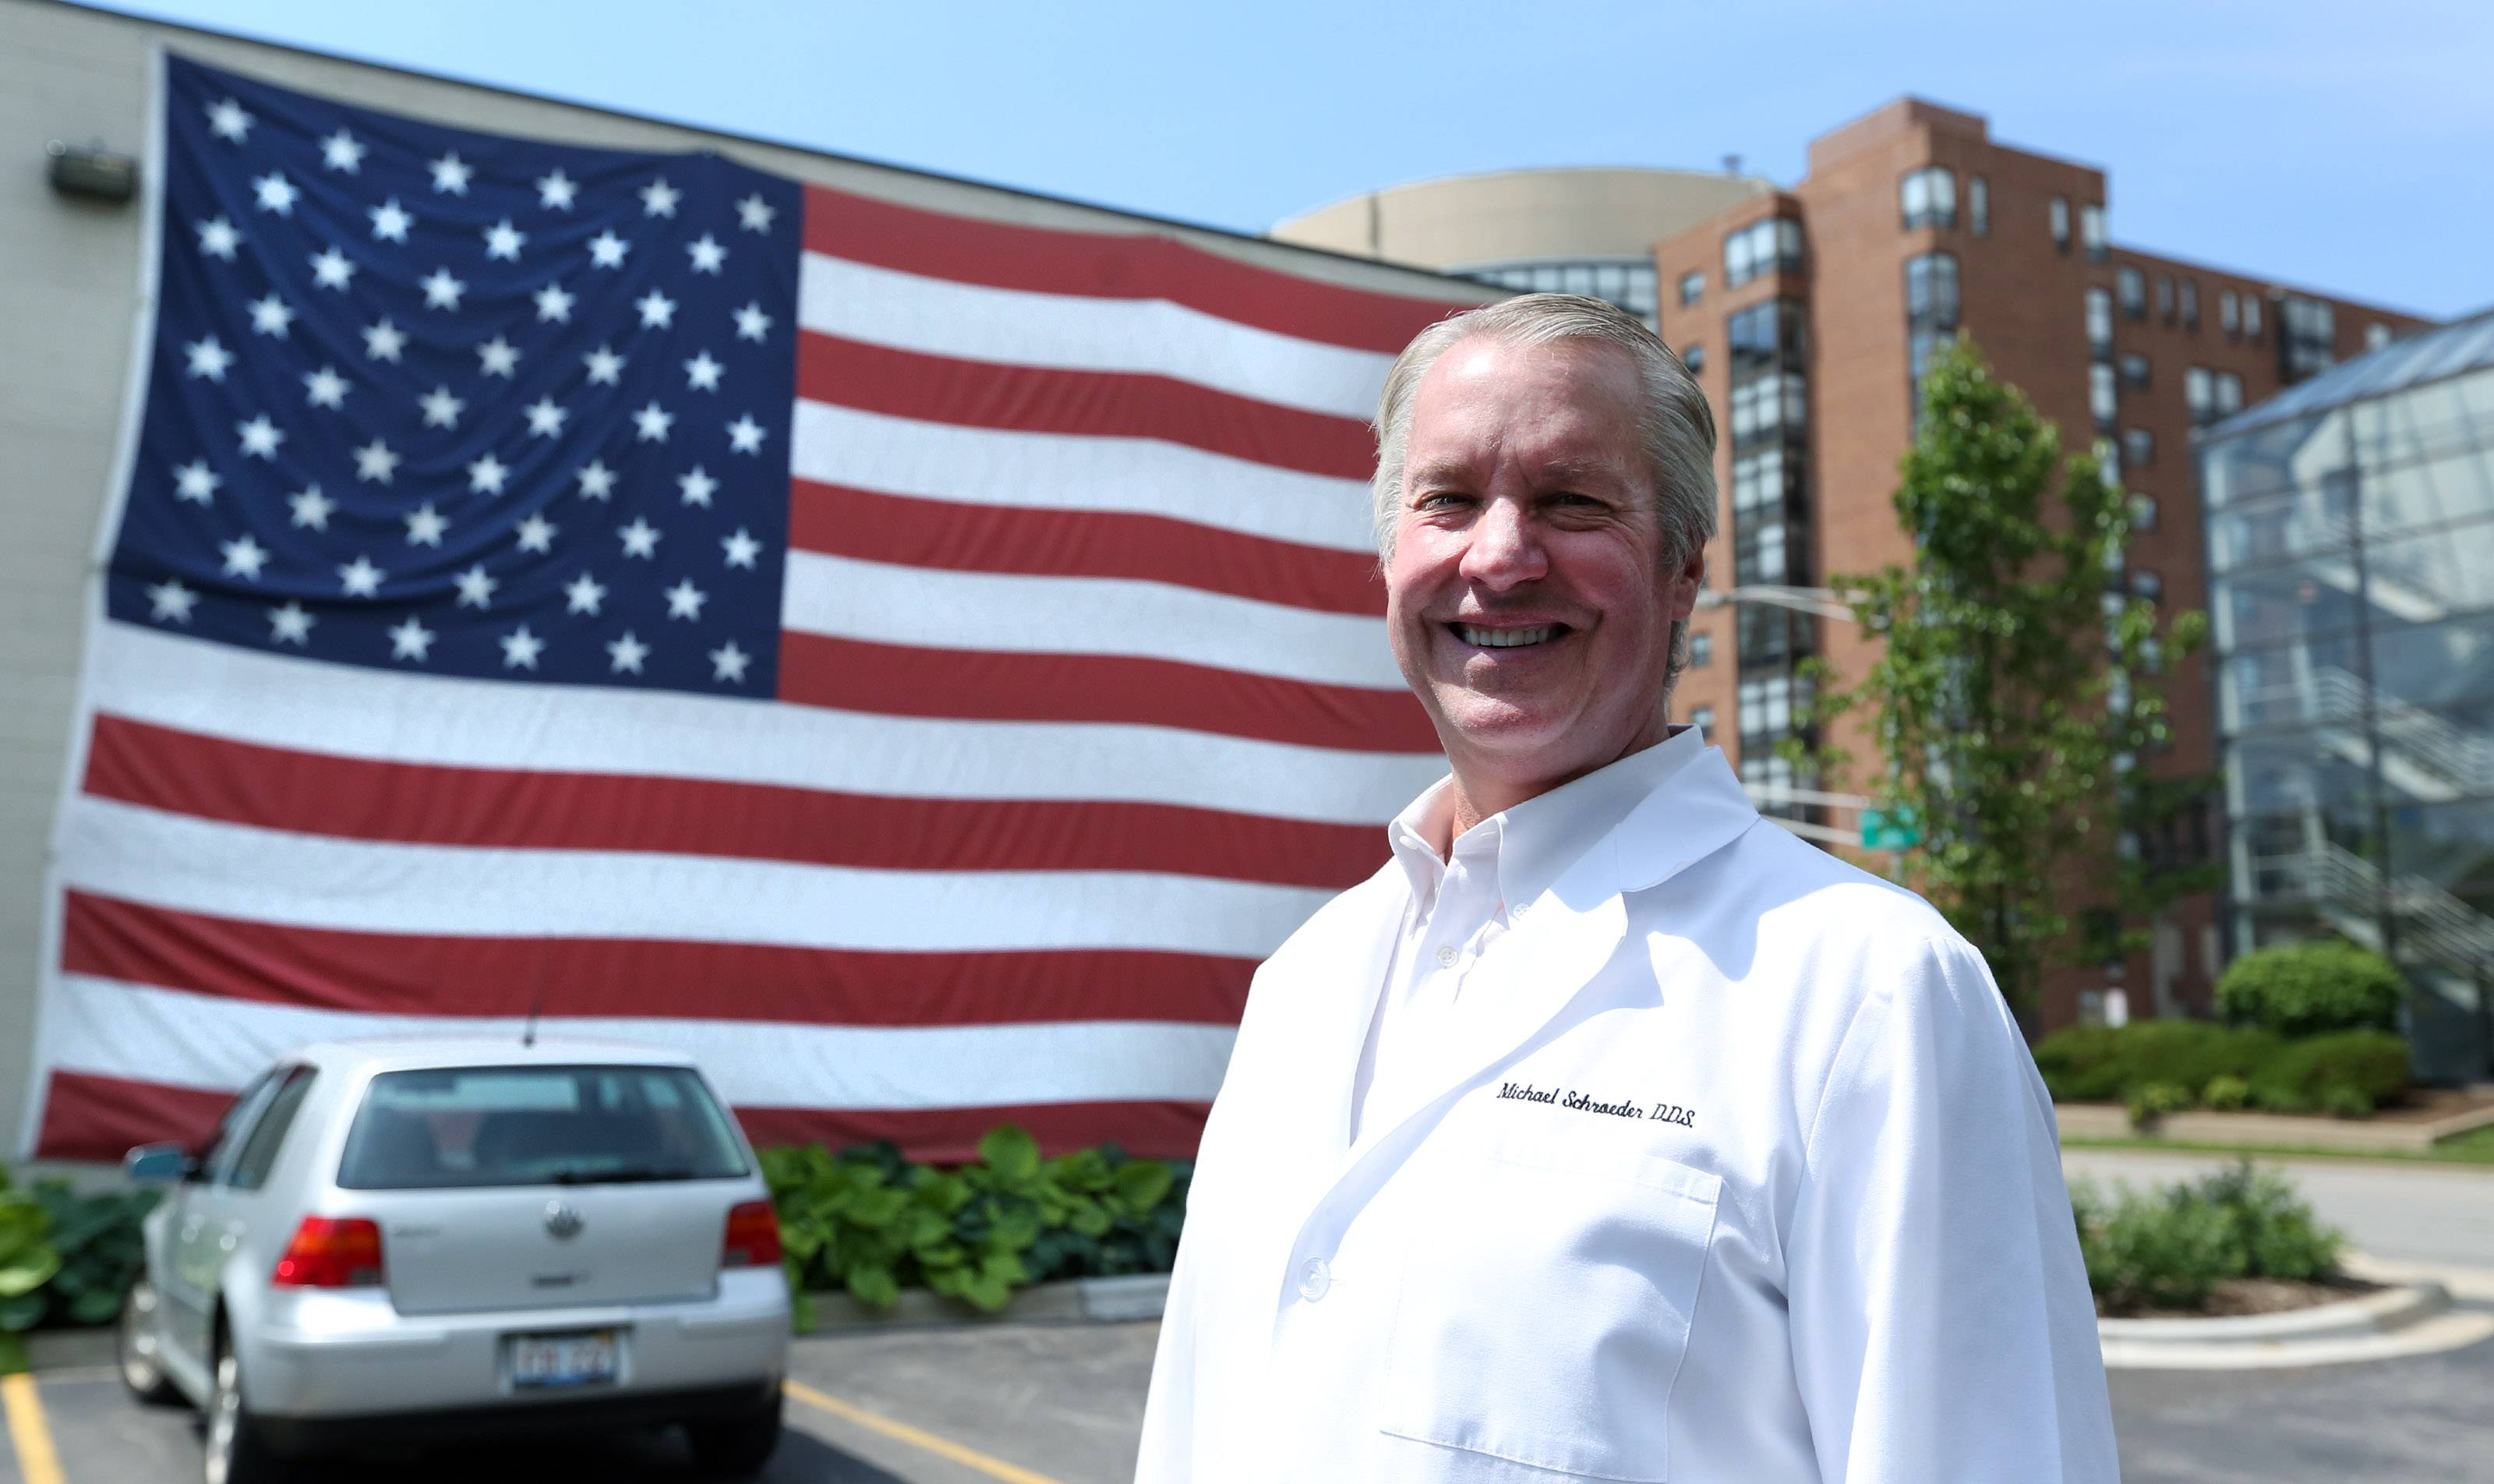 Dr. Michael B. Schroeder had this 40-foot-wide flag placed on the side of the Arlington Heights building that is home to his dental practice.